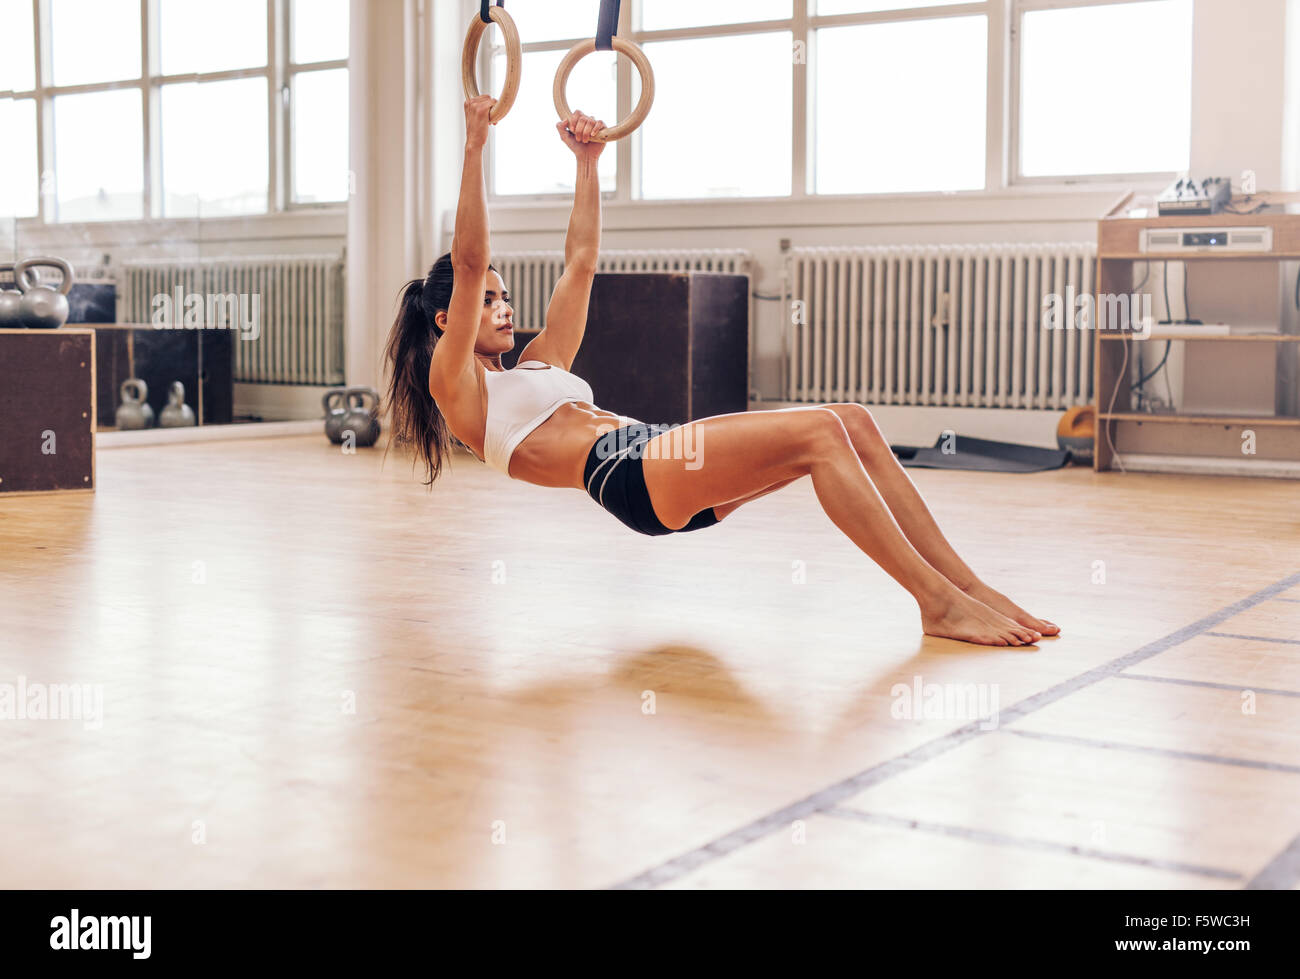 Muscular young woman doing pull-ups on rings. Fit young female athlete exercising with gymnastic rings at gym. - Stock Image